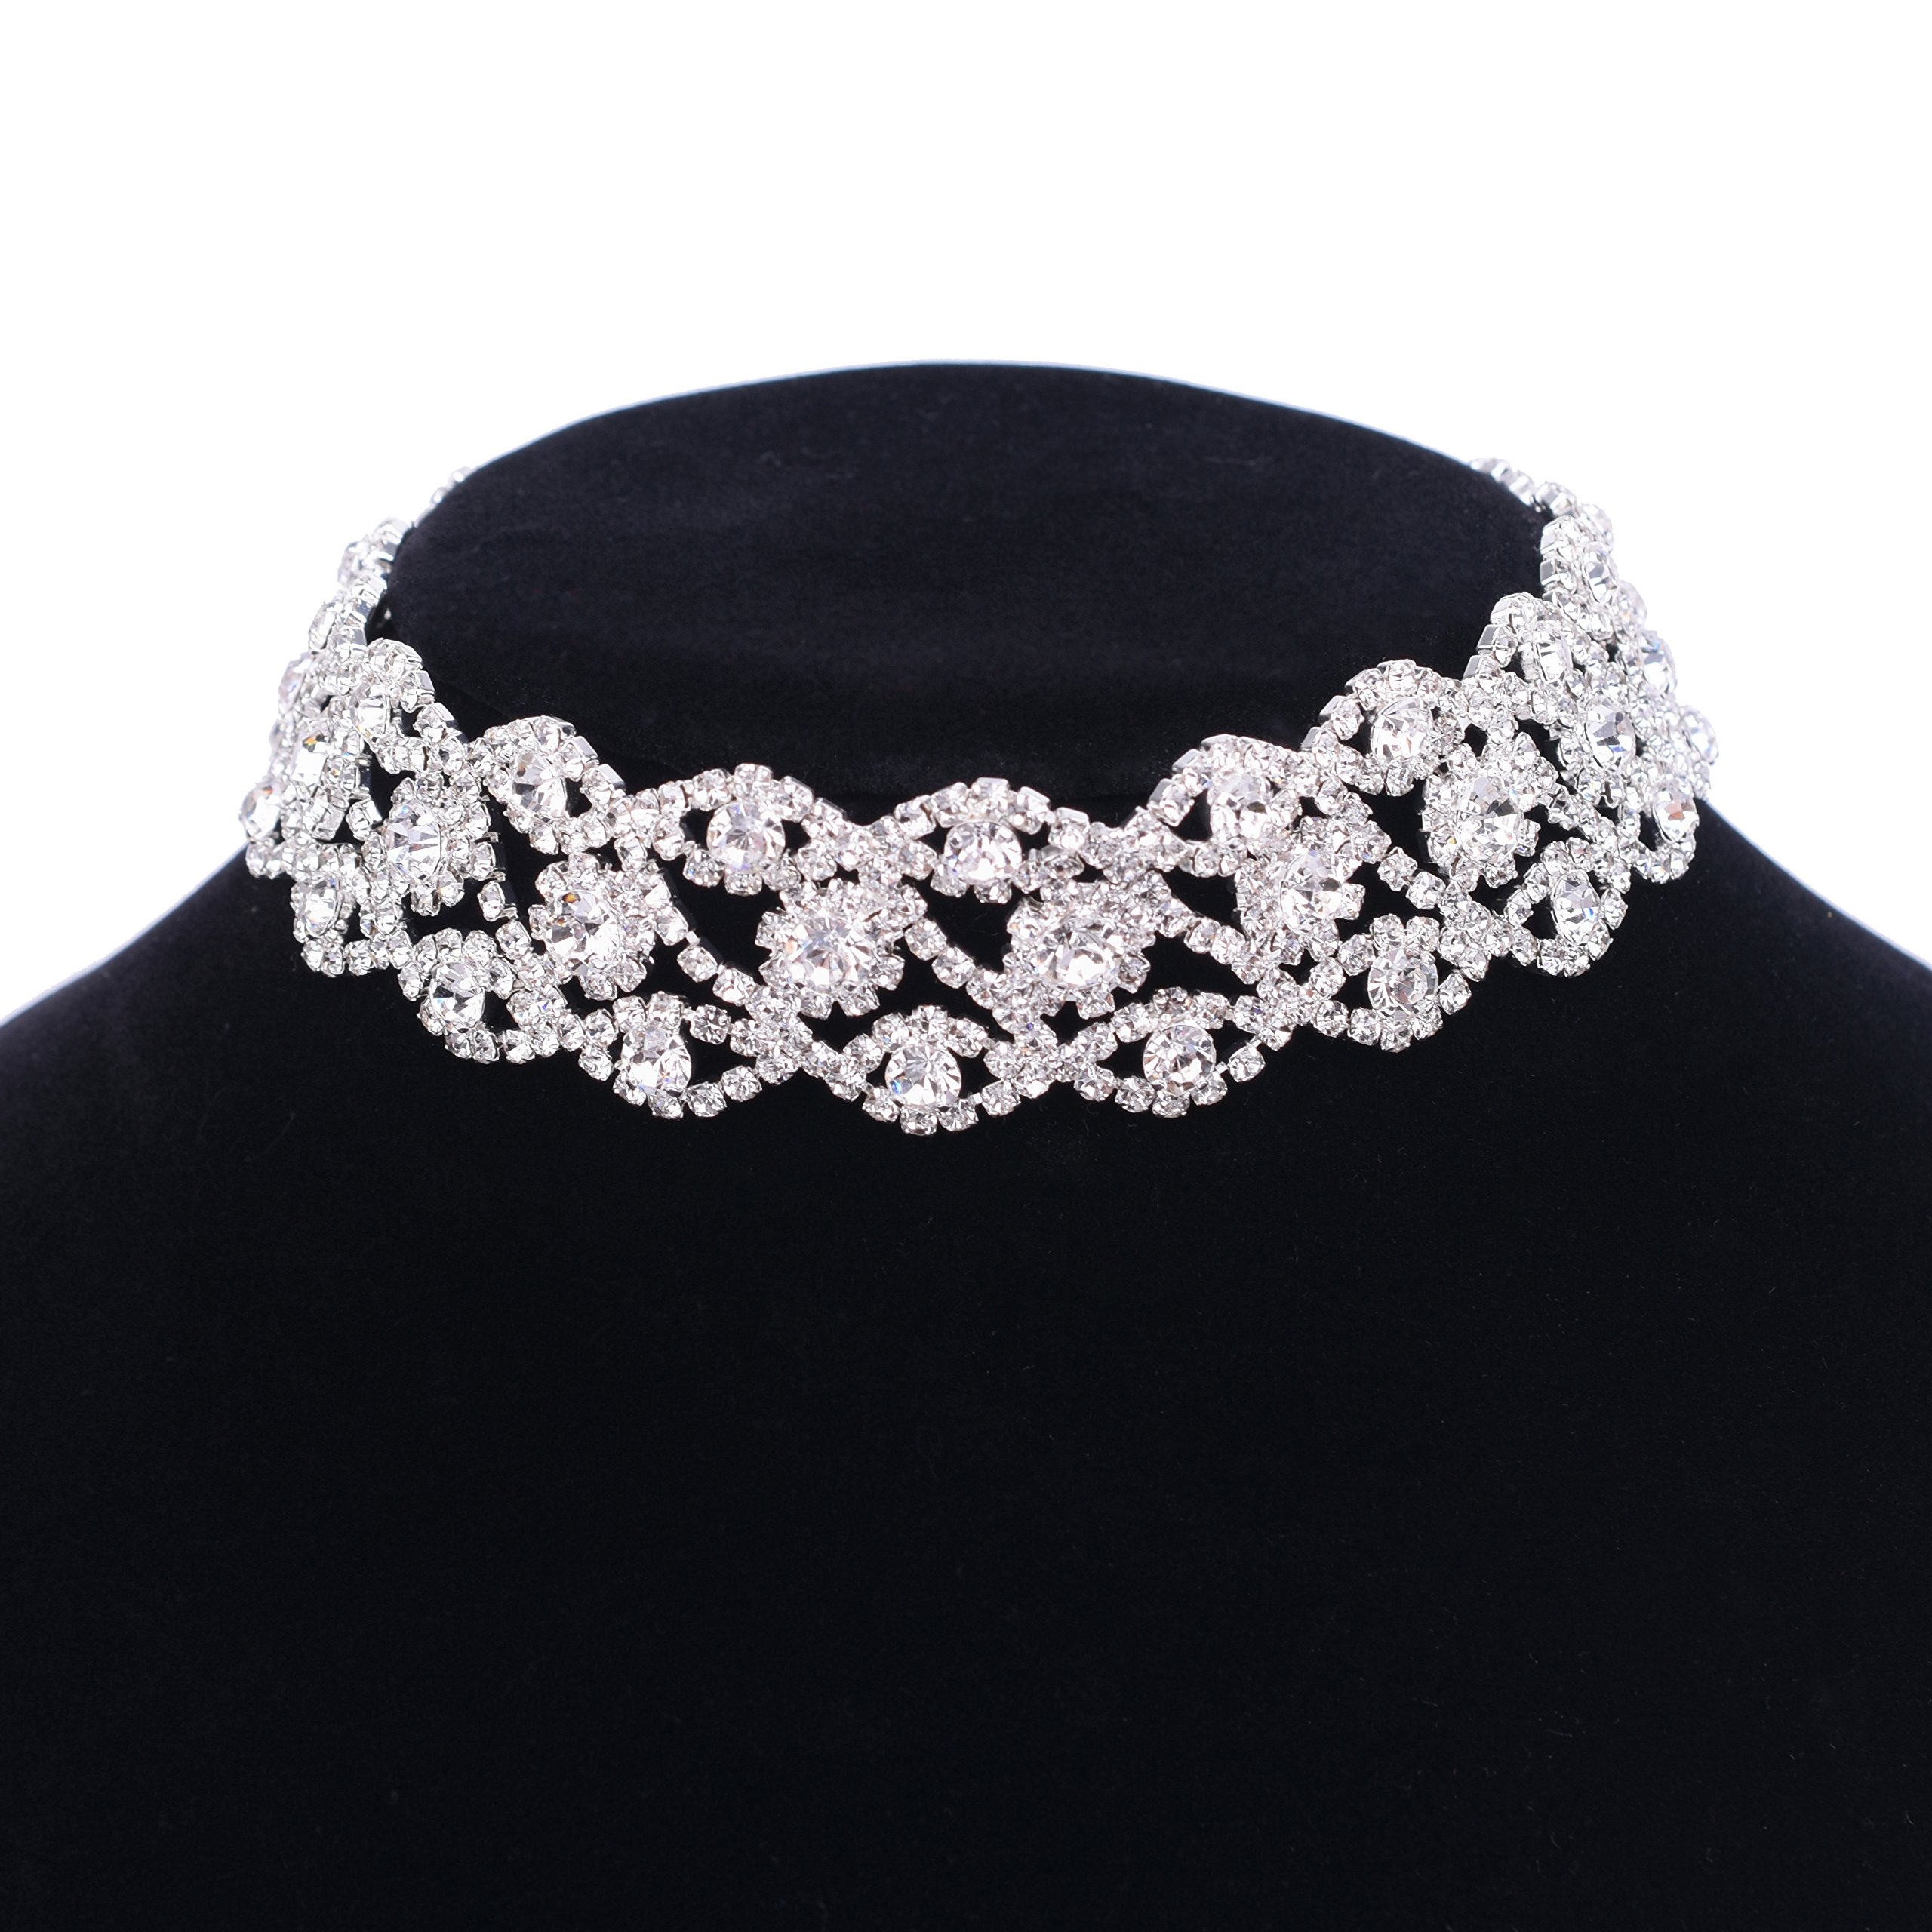 Paxuan Luxury Womens Clear Rhinestone Crystal Silver Choker Necklace Wide Collar Necklace Adjustable (Silver Plated White Crystal) by Paxuan